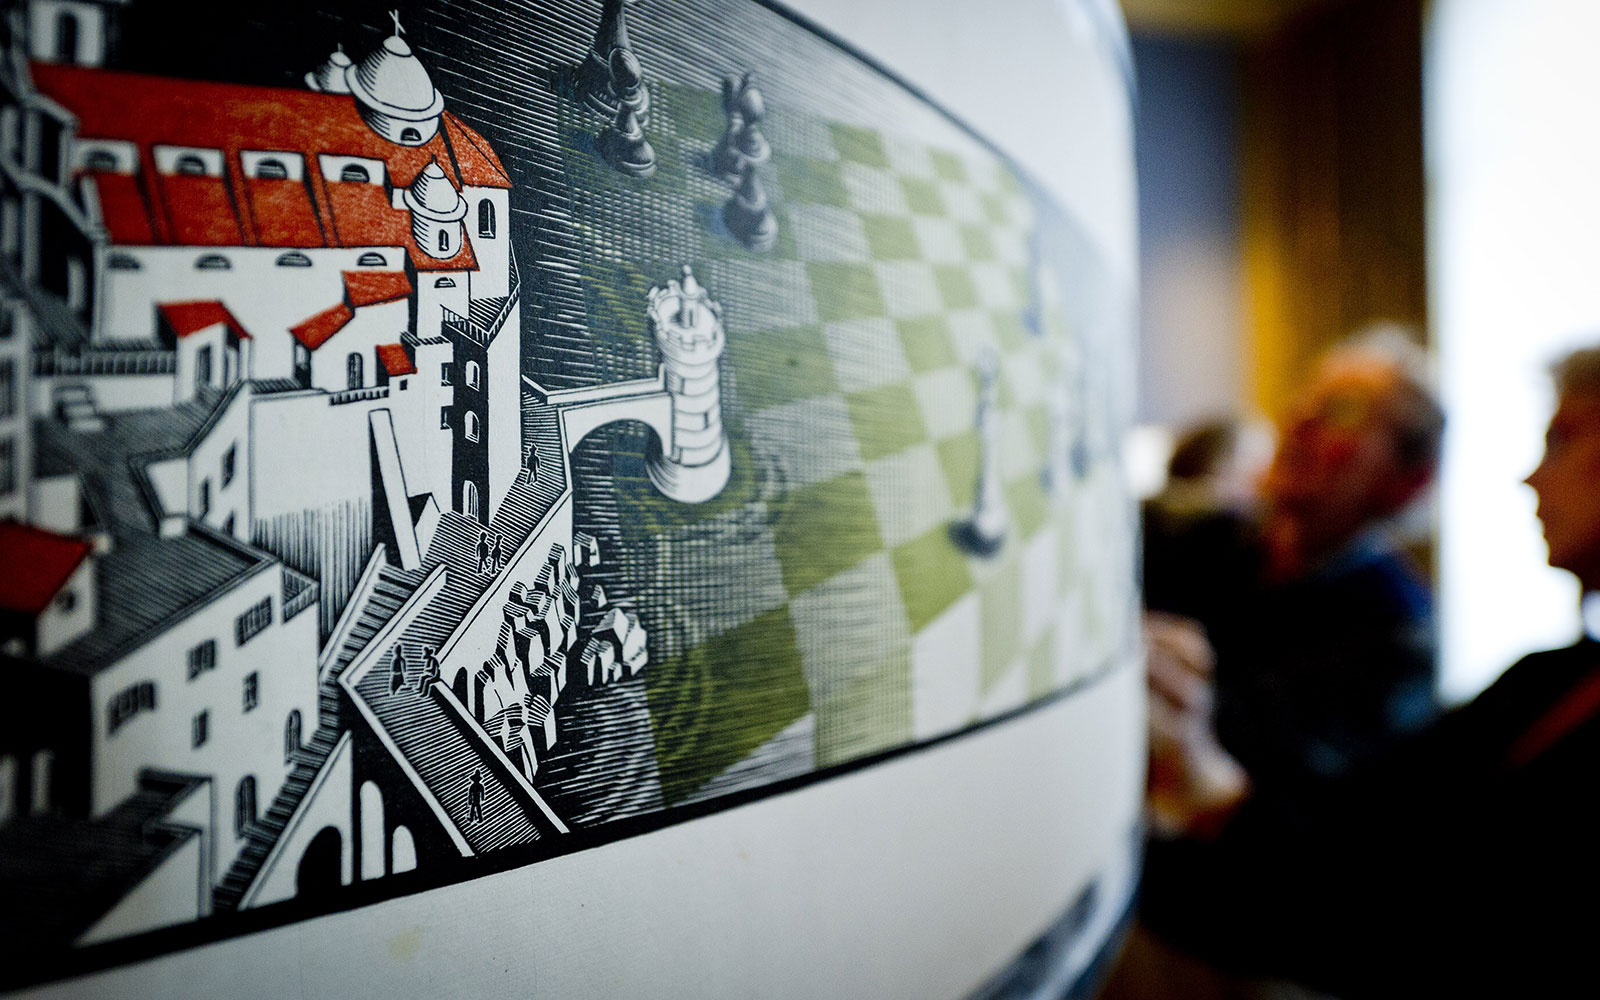 Netherlands' M.C. Escher Museum is Under Fire for Displaying Fakes